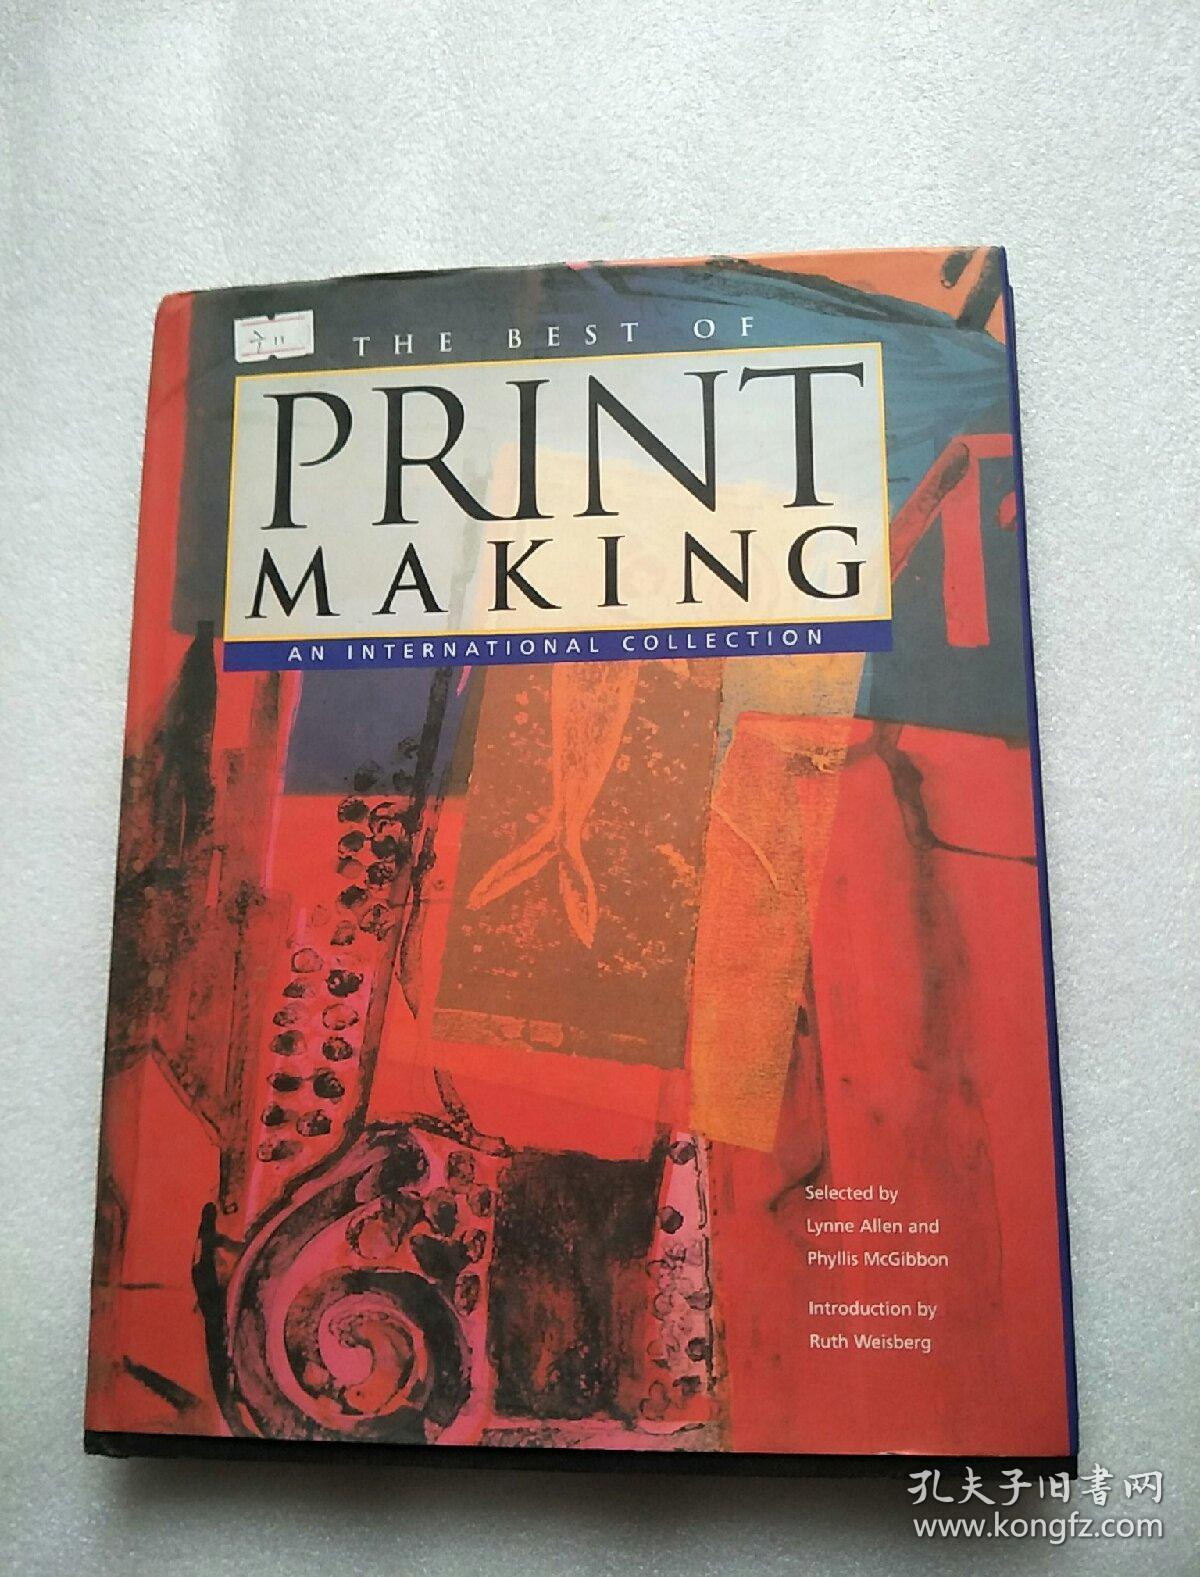 The Best of Printmaking: An International Collection【最佳版画:国际收藏】精装、大16开